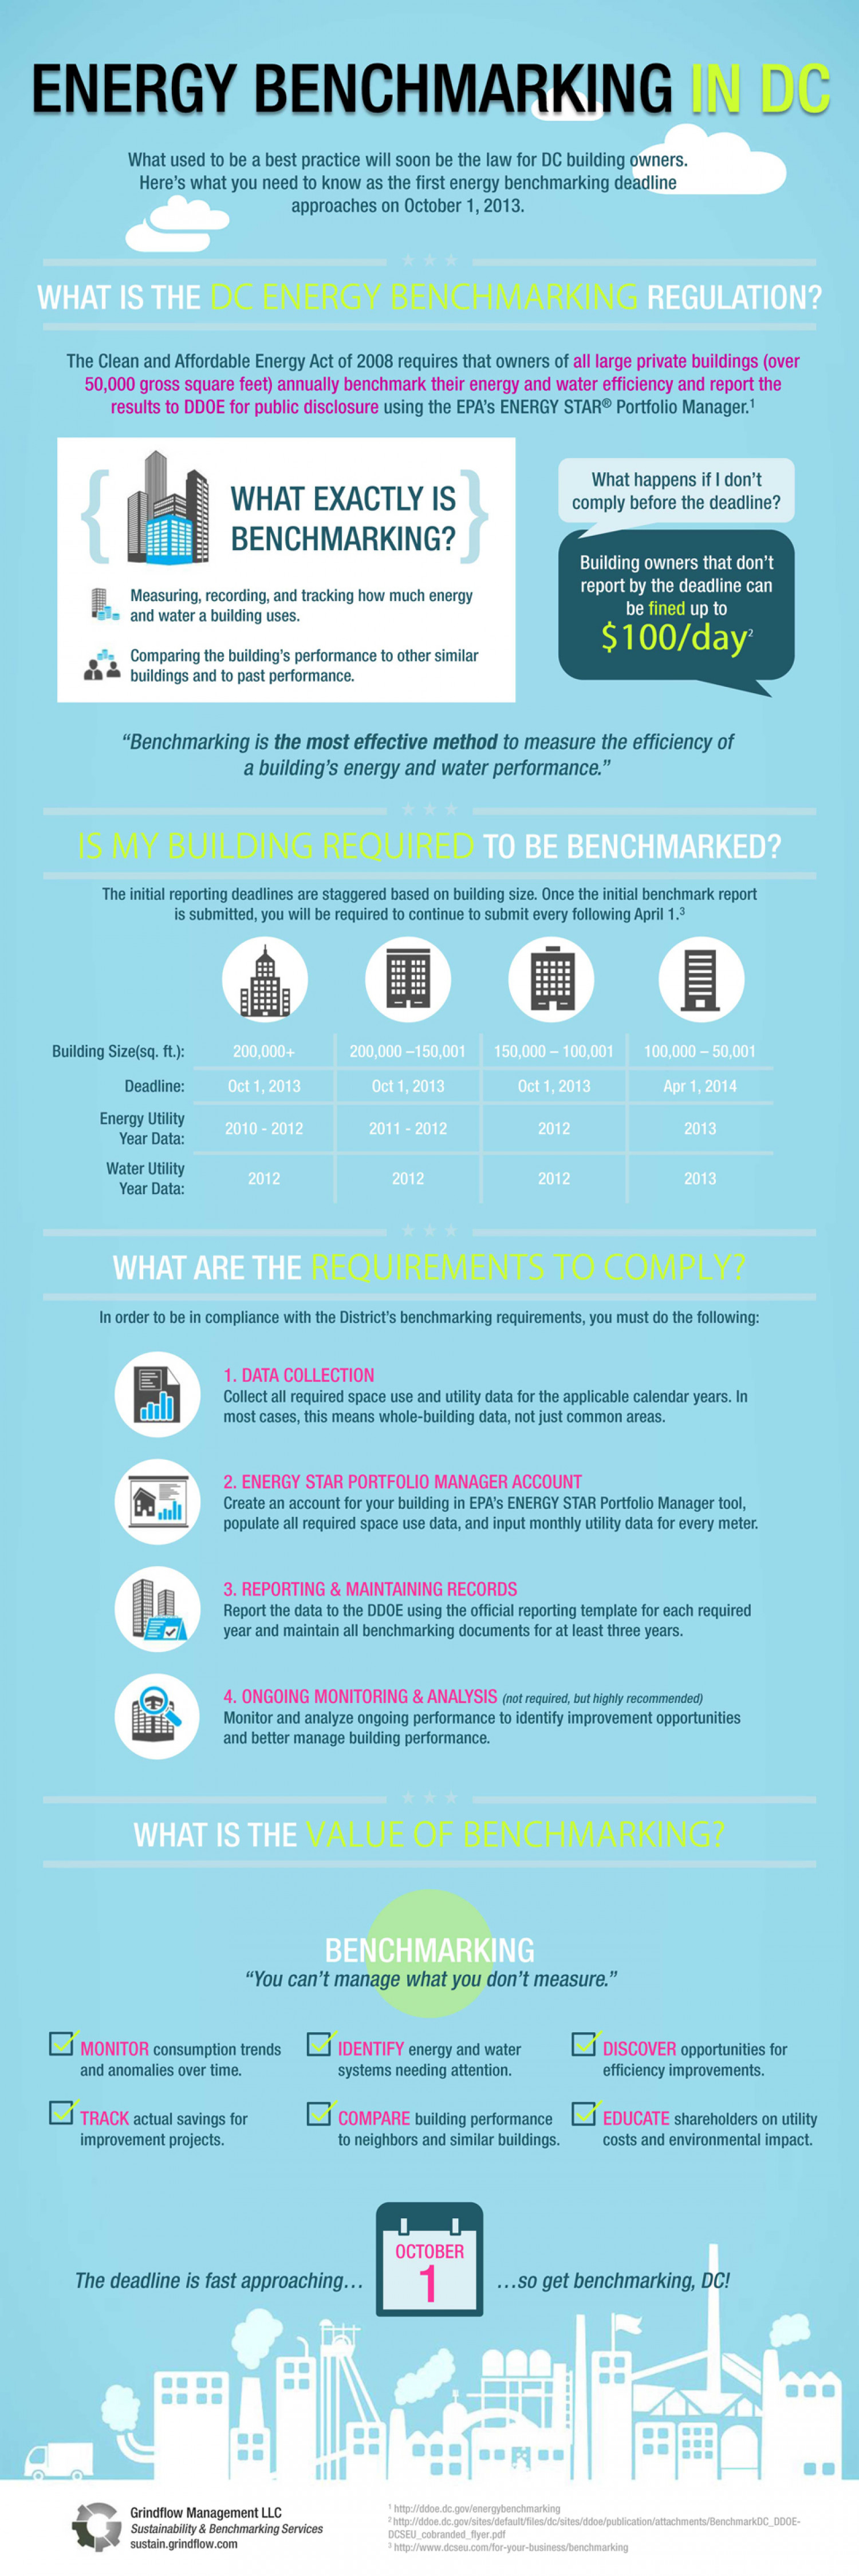 Energy Benchmarking in DC Infographic